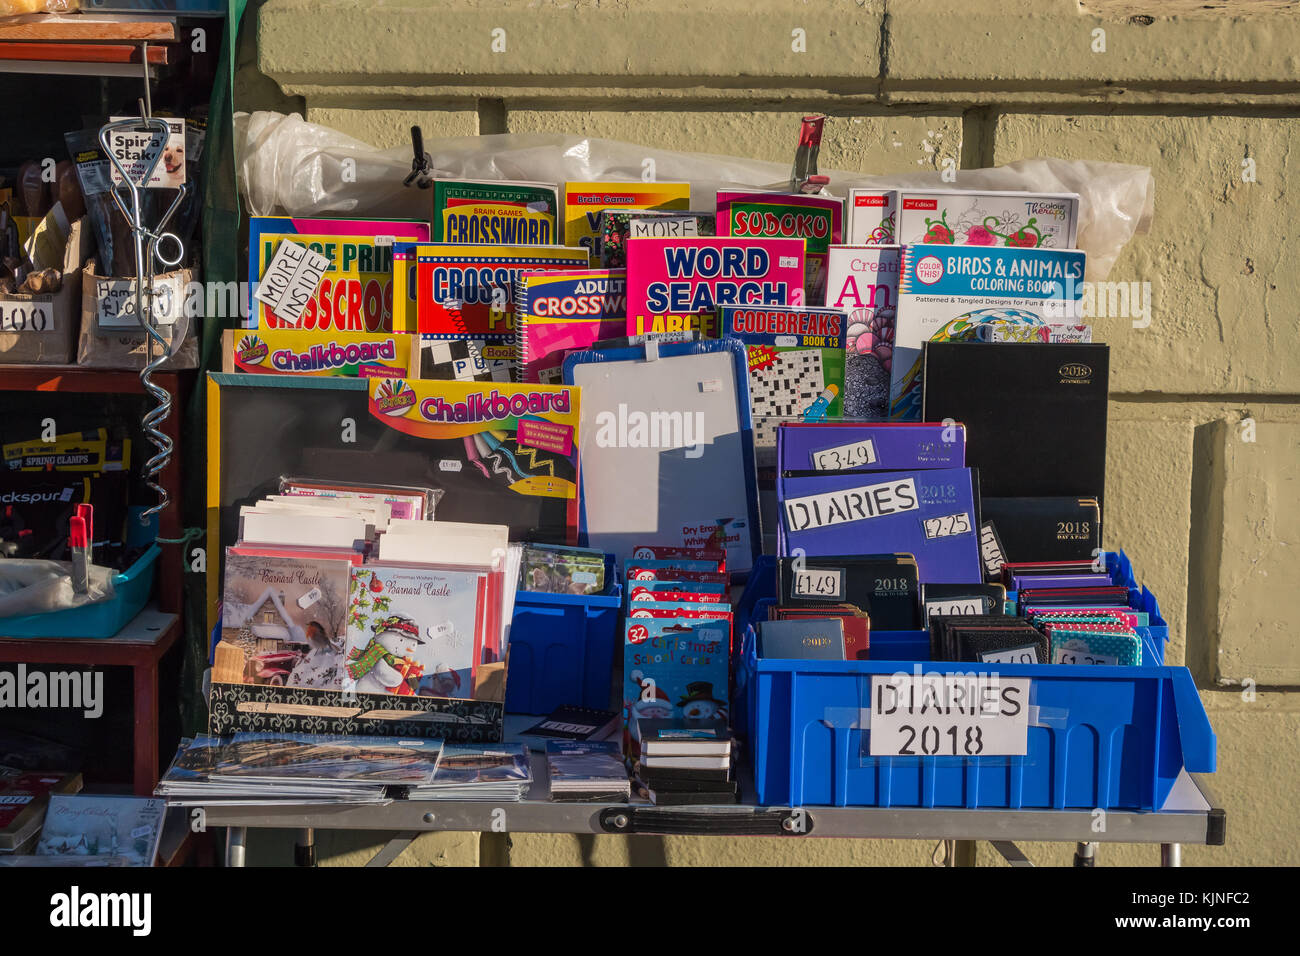 A colourful display of 2018 diaries, puzzle books, calendars and other stationery in bright winter sunshine - Stock Image